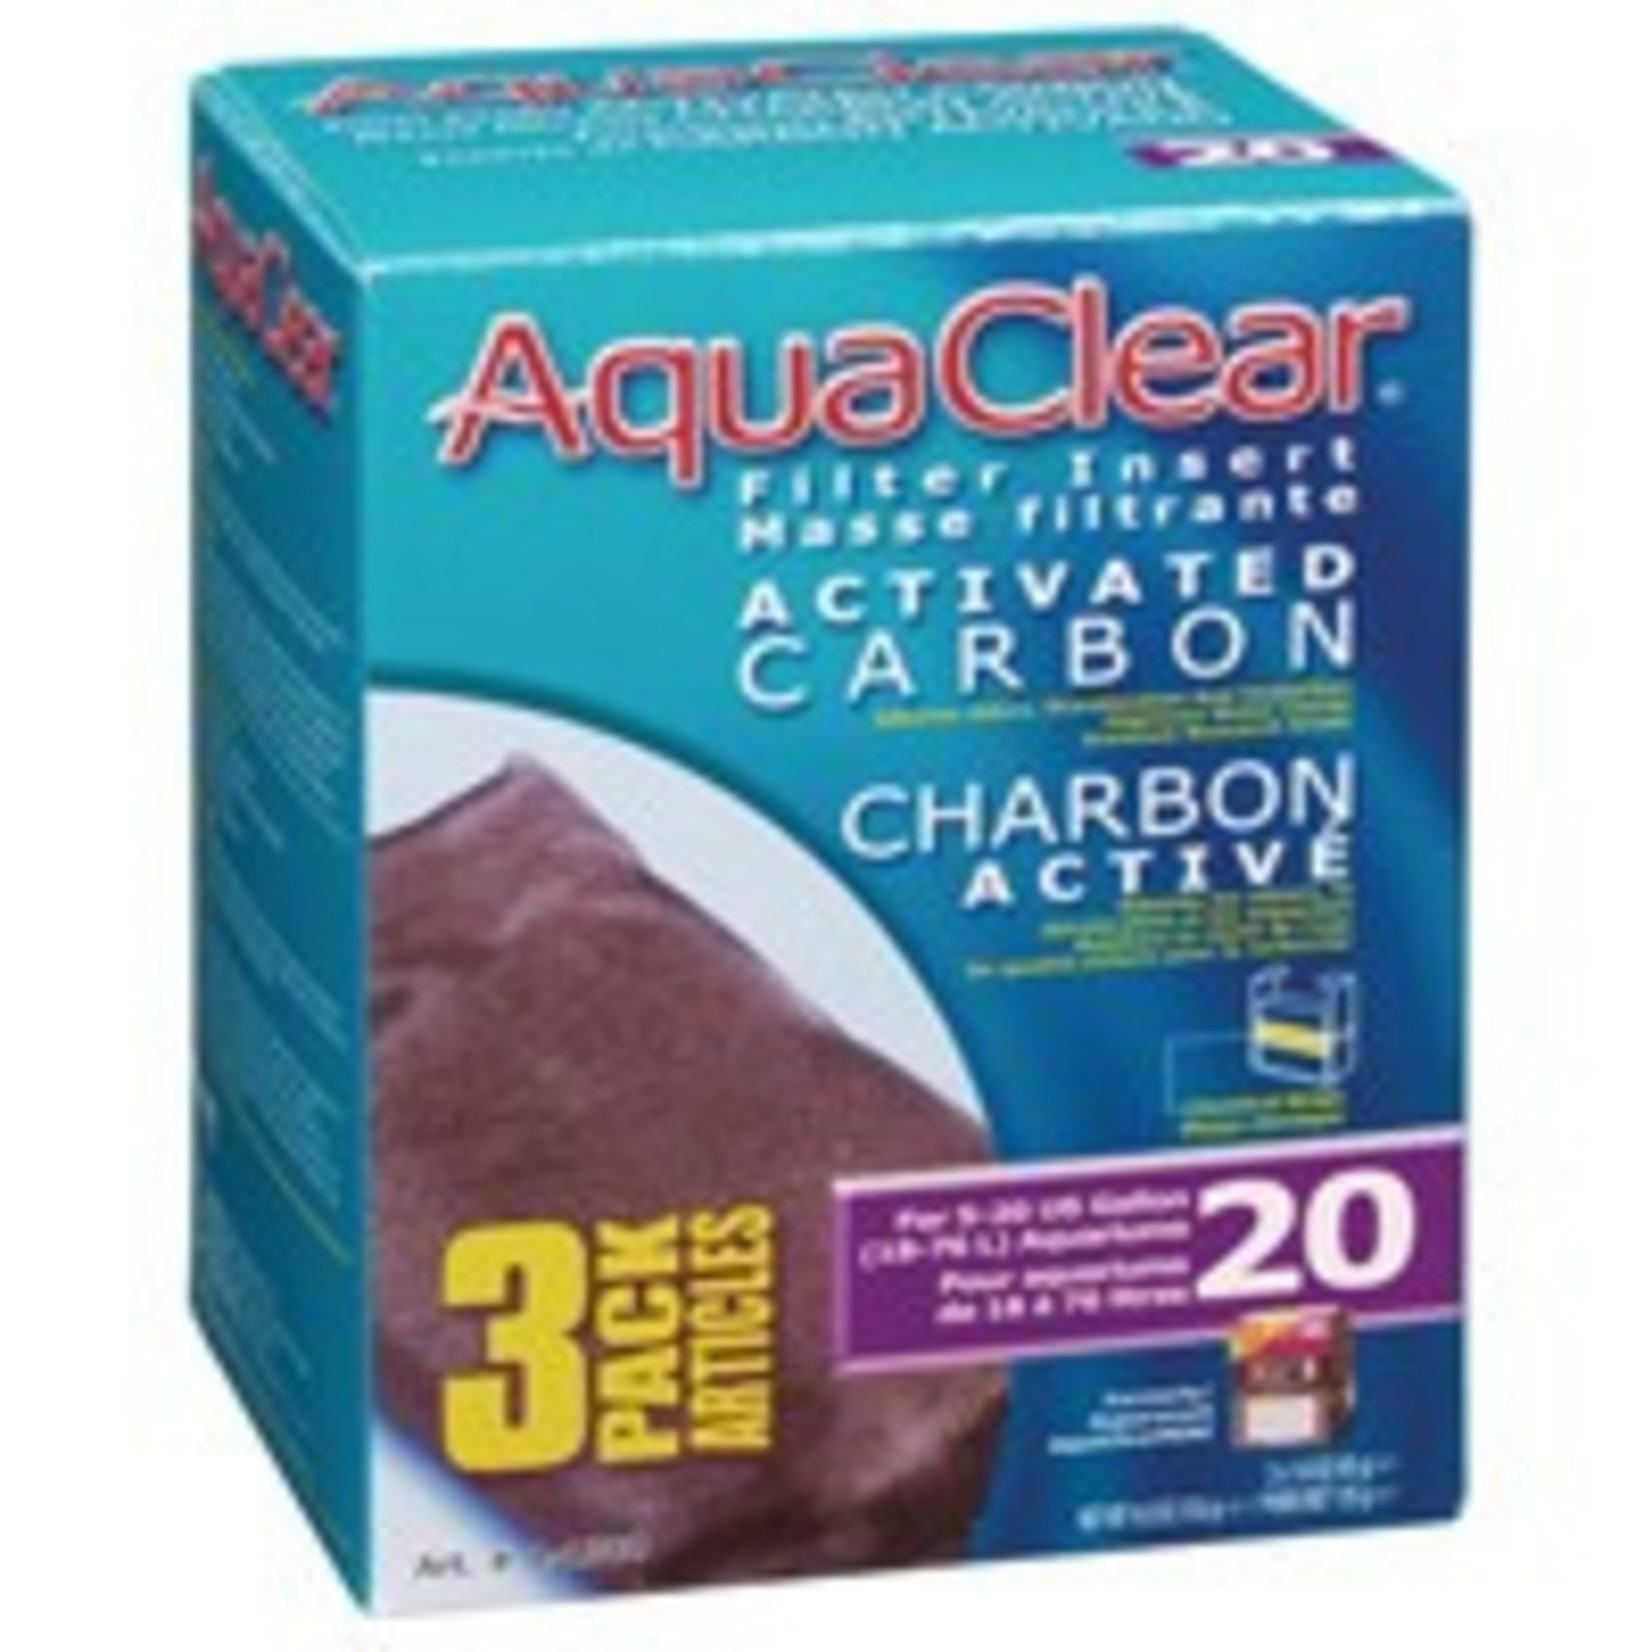 AquaClear 20 Activated Carbon Filter Insert 3 pack, 135 g (4.8 oz)